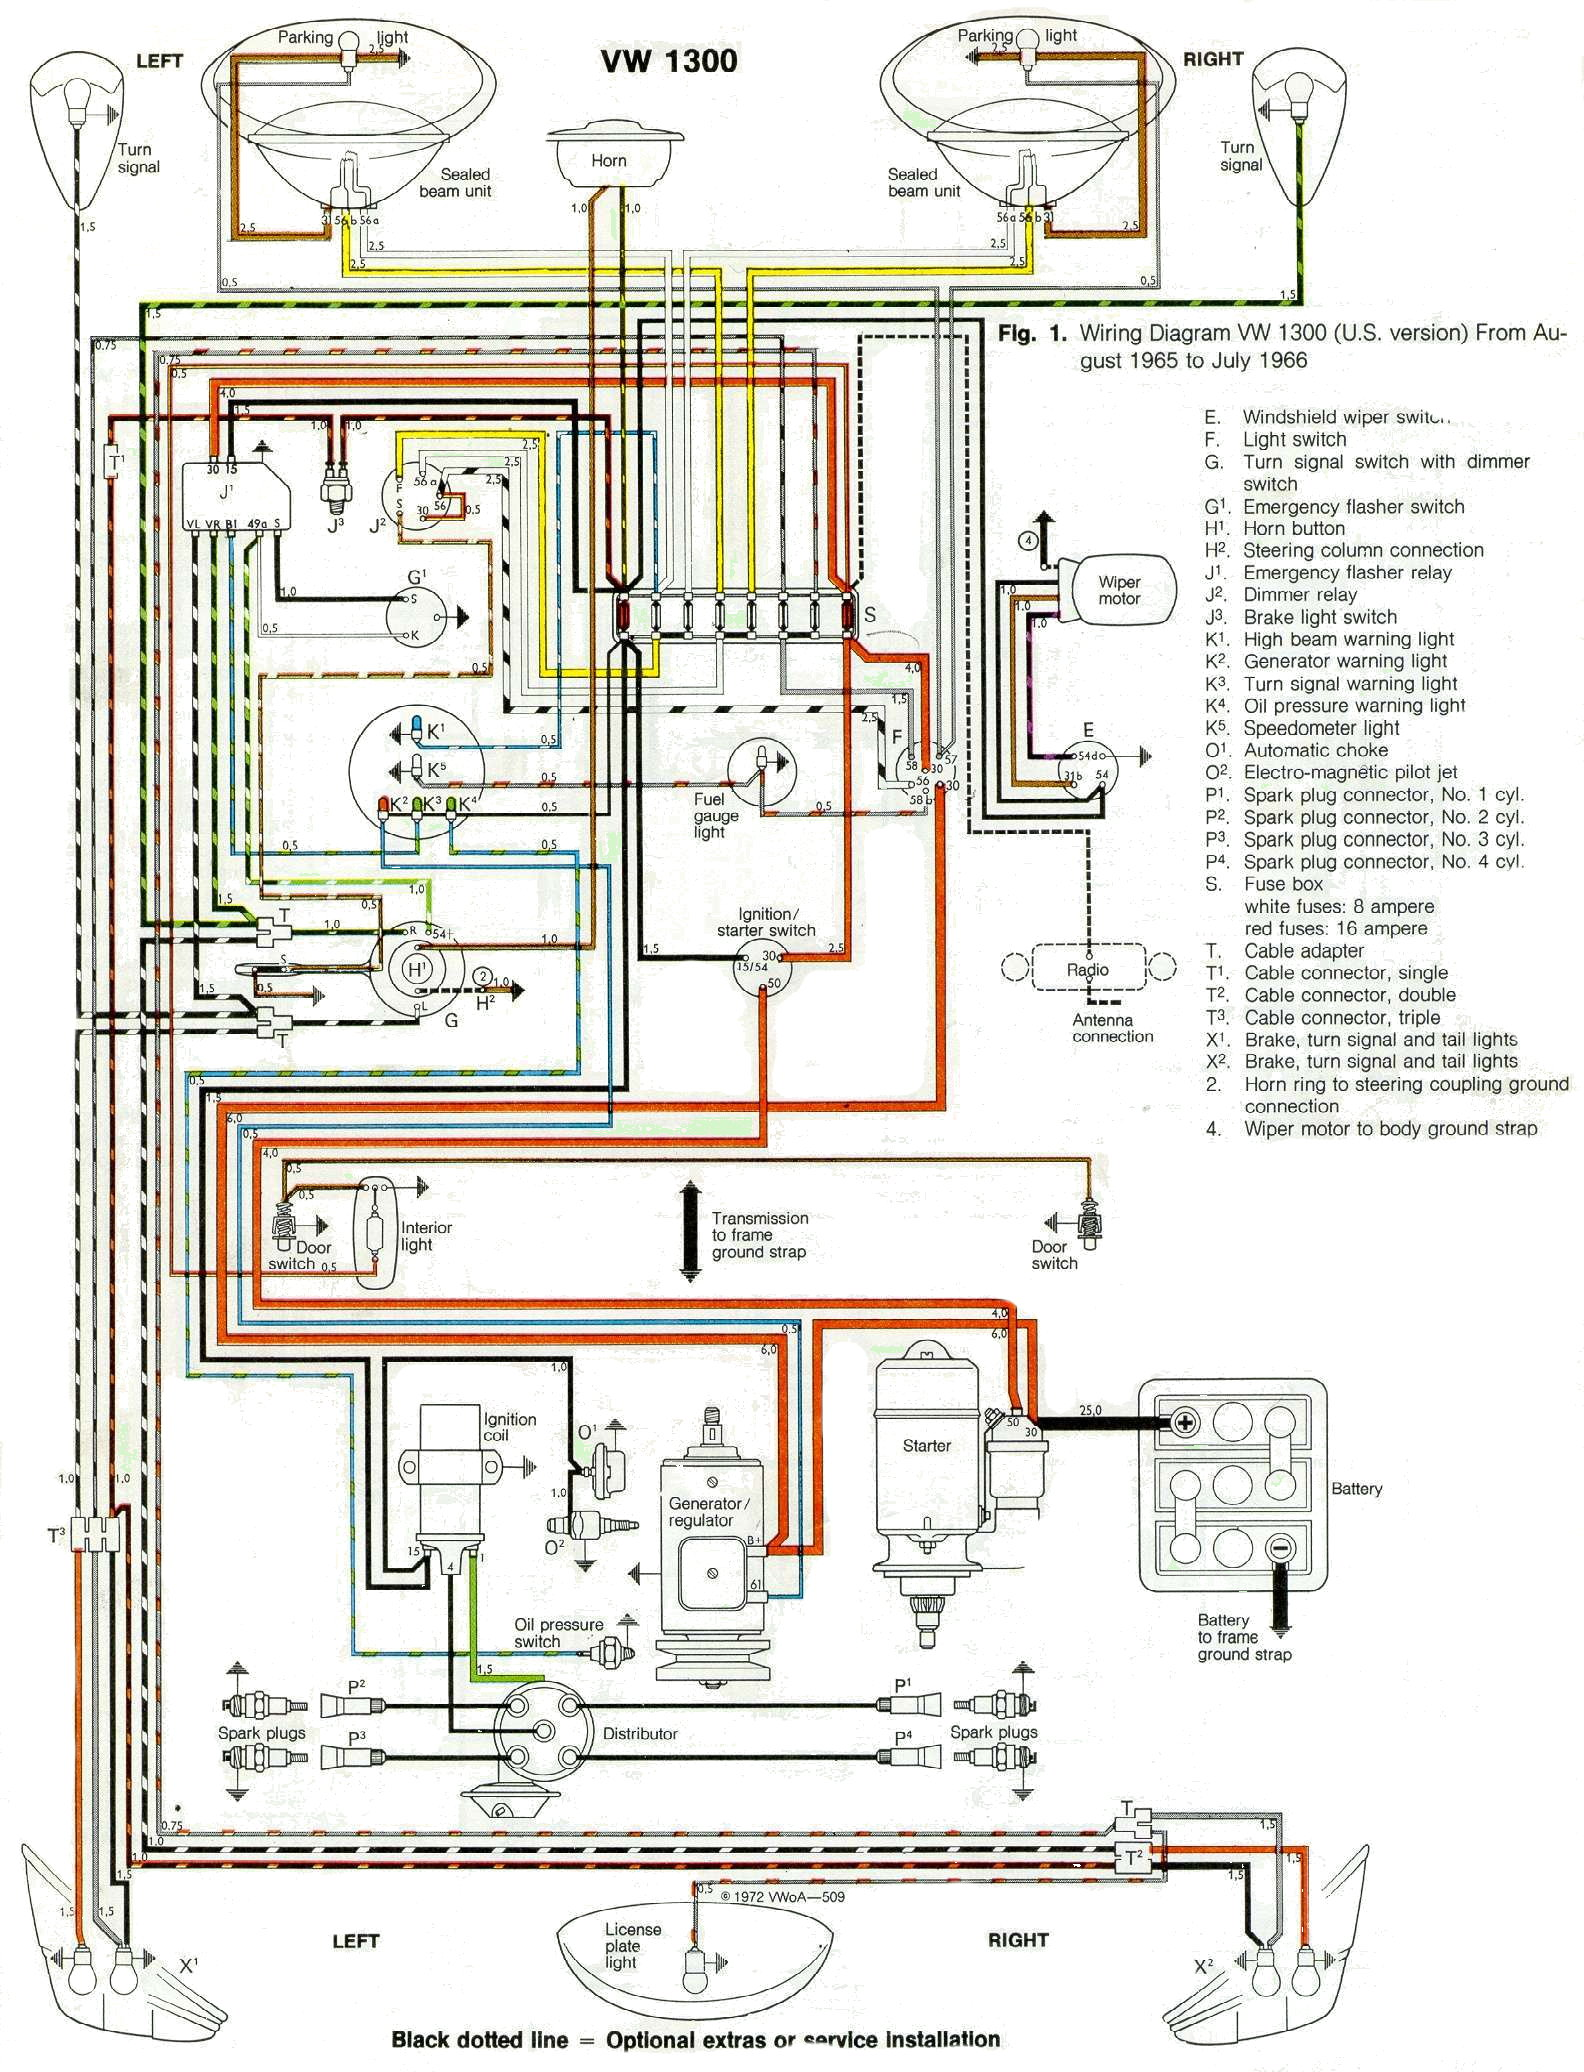 1966 Wiring 1966 wiring diagram VW Alternator Hook Up at virtualis.co